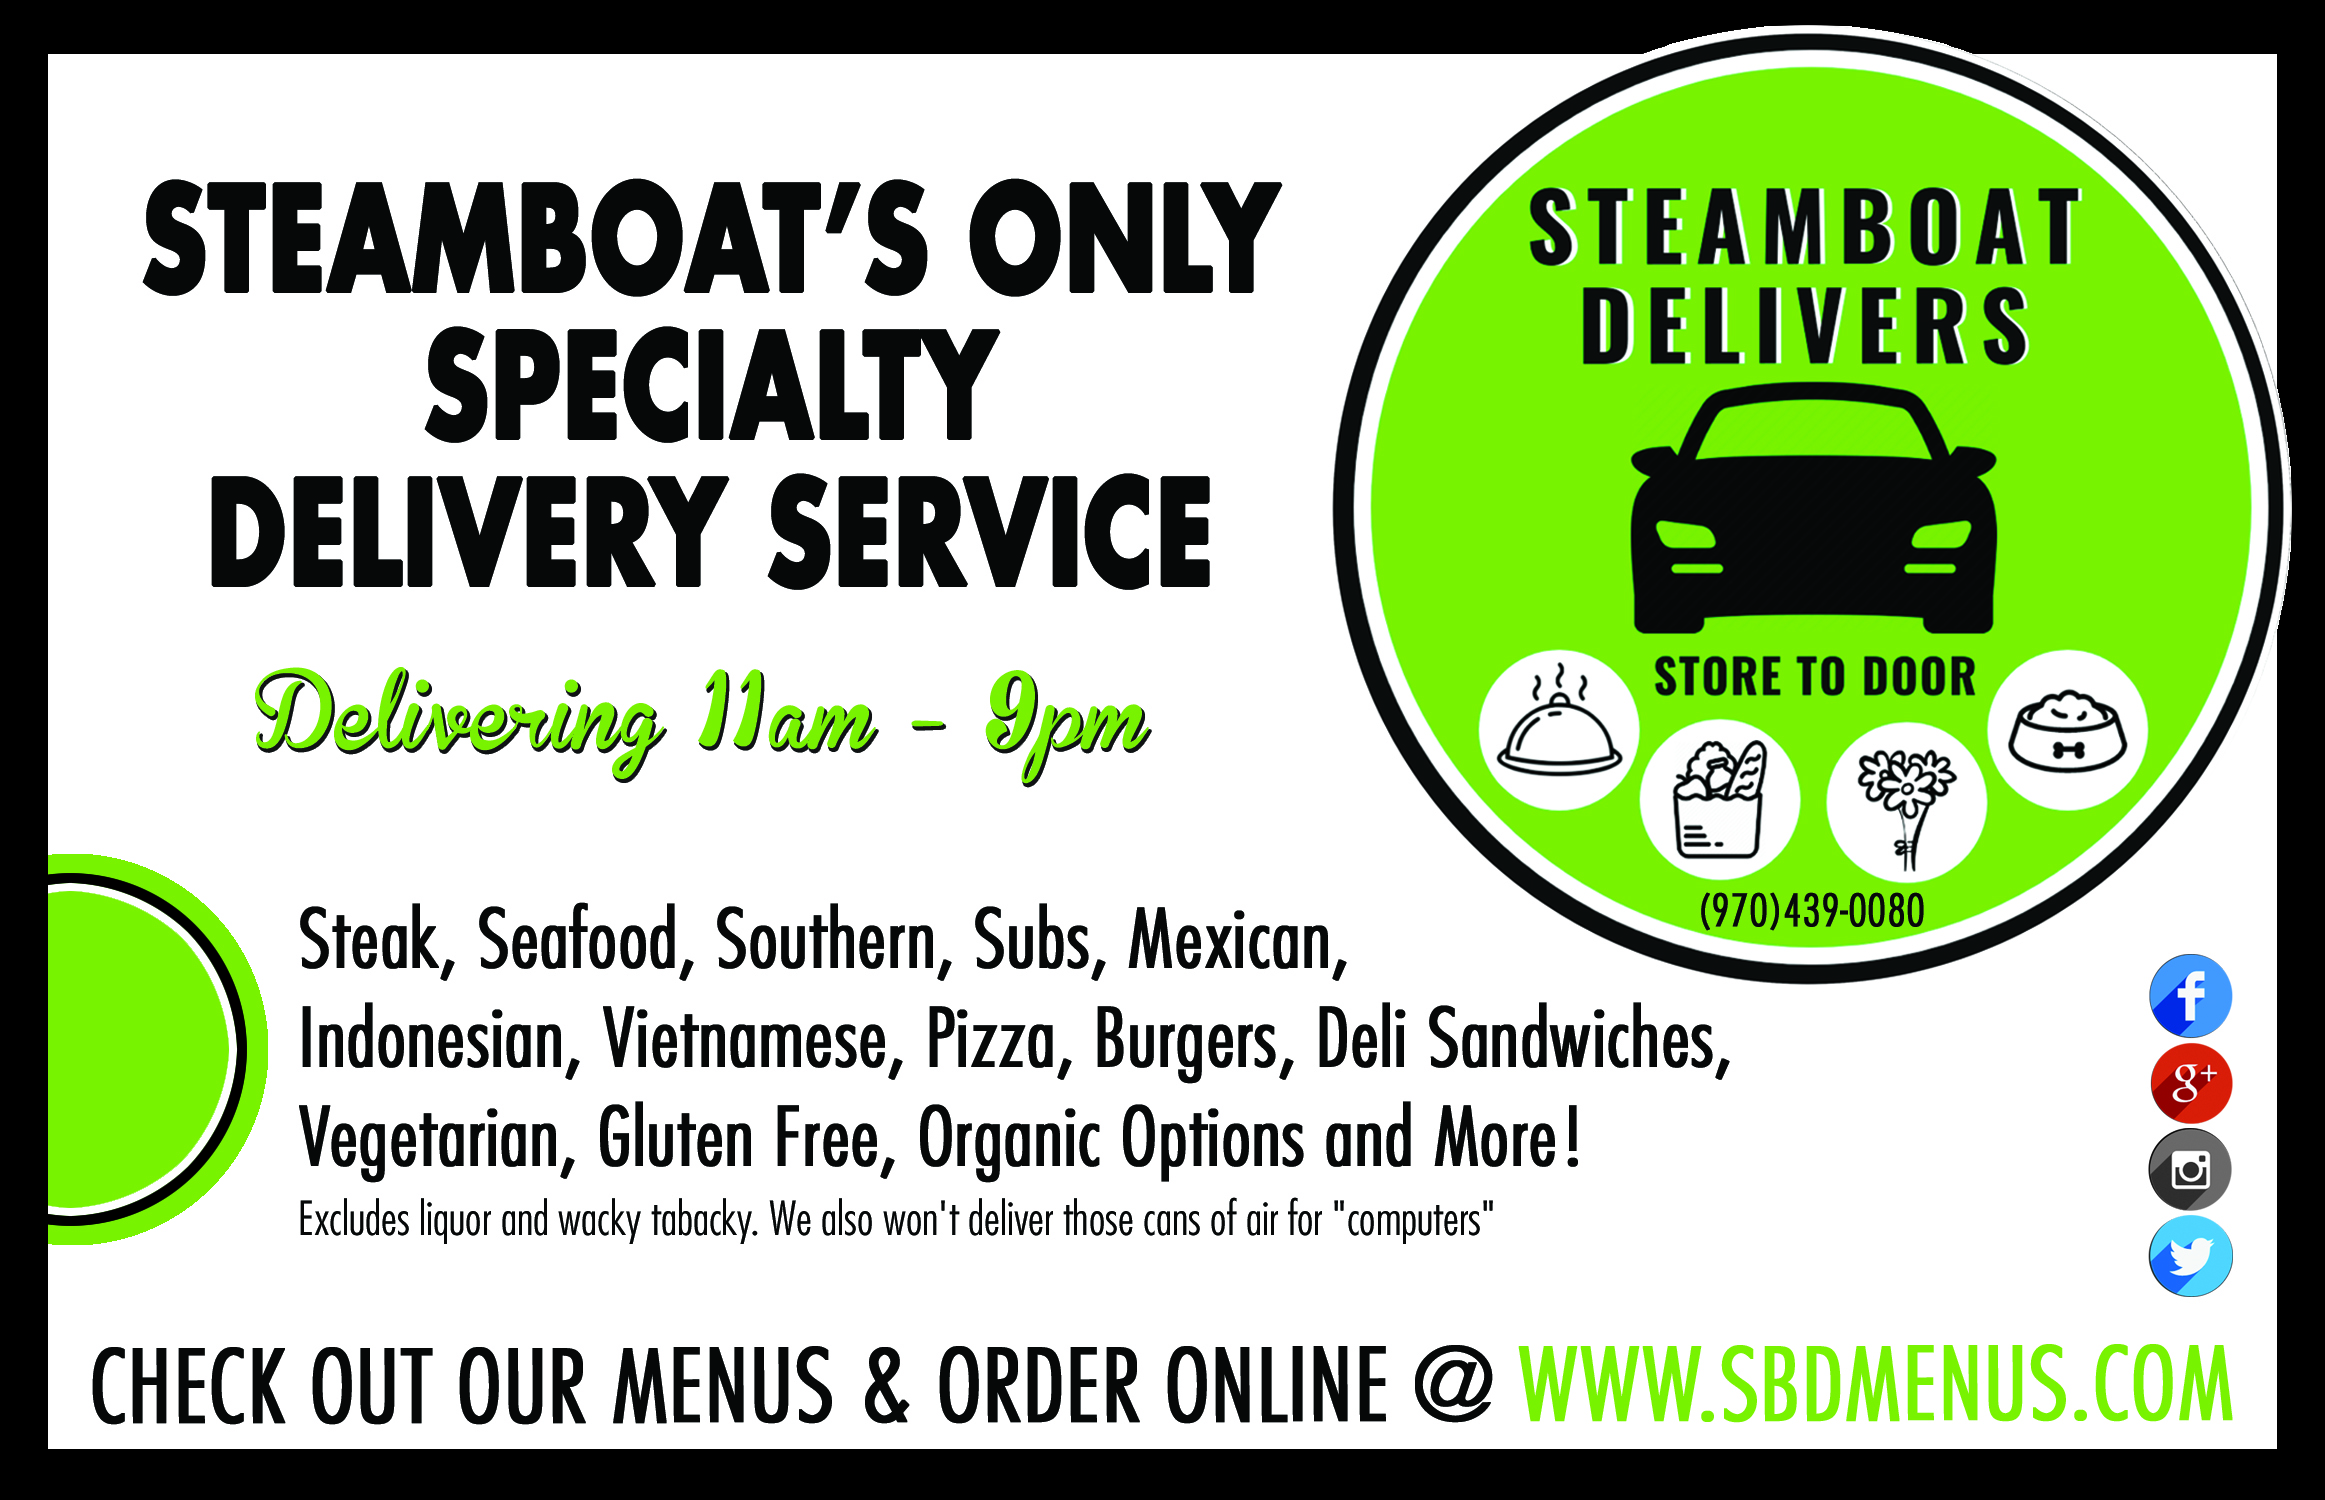 Steamboat Delivers